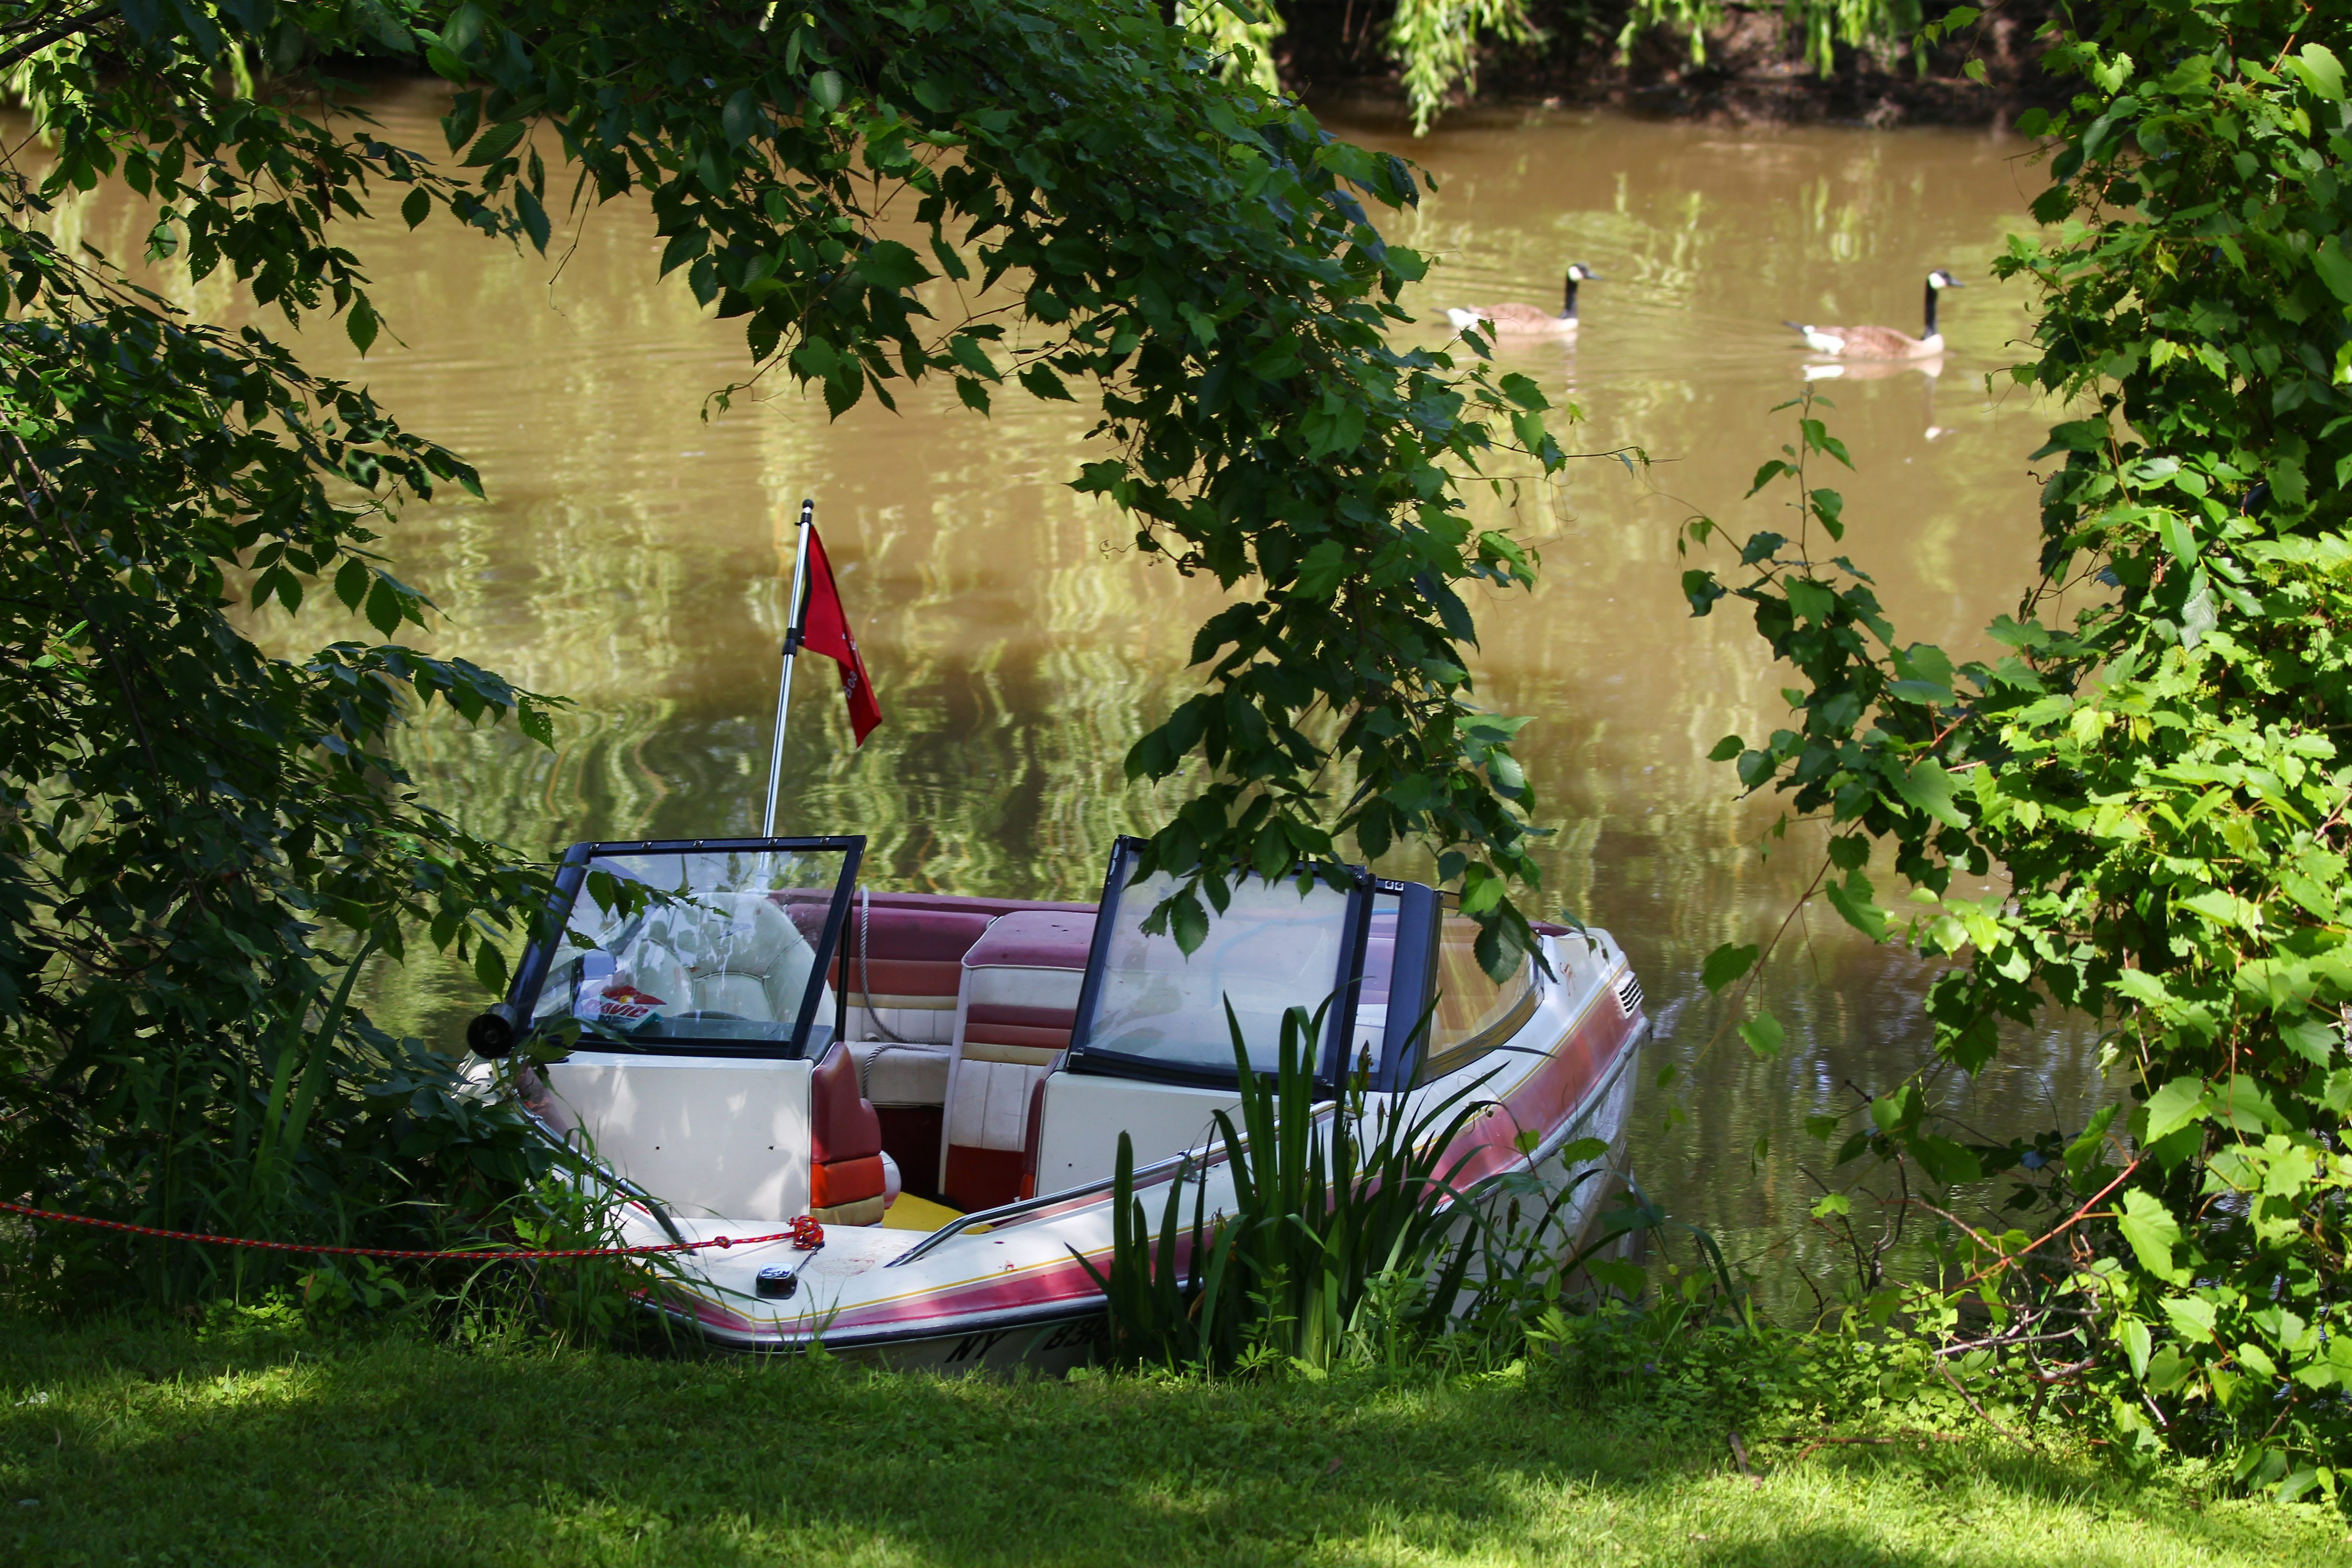 The boat that was involved in the 2015 accident on Ellicott Creek that resulted in a death. (Mark Mulville/Buffalo News file photo)